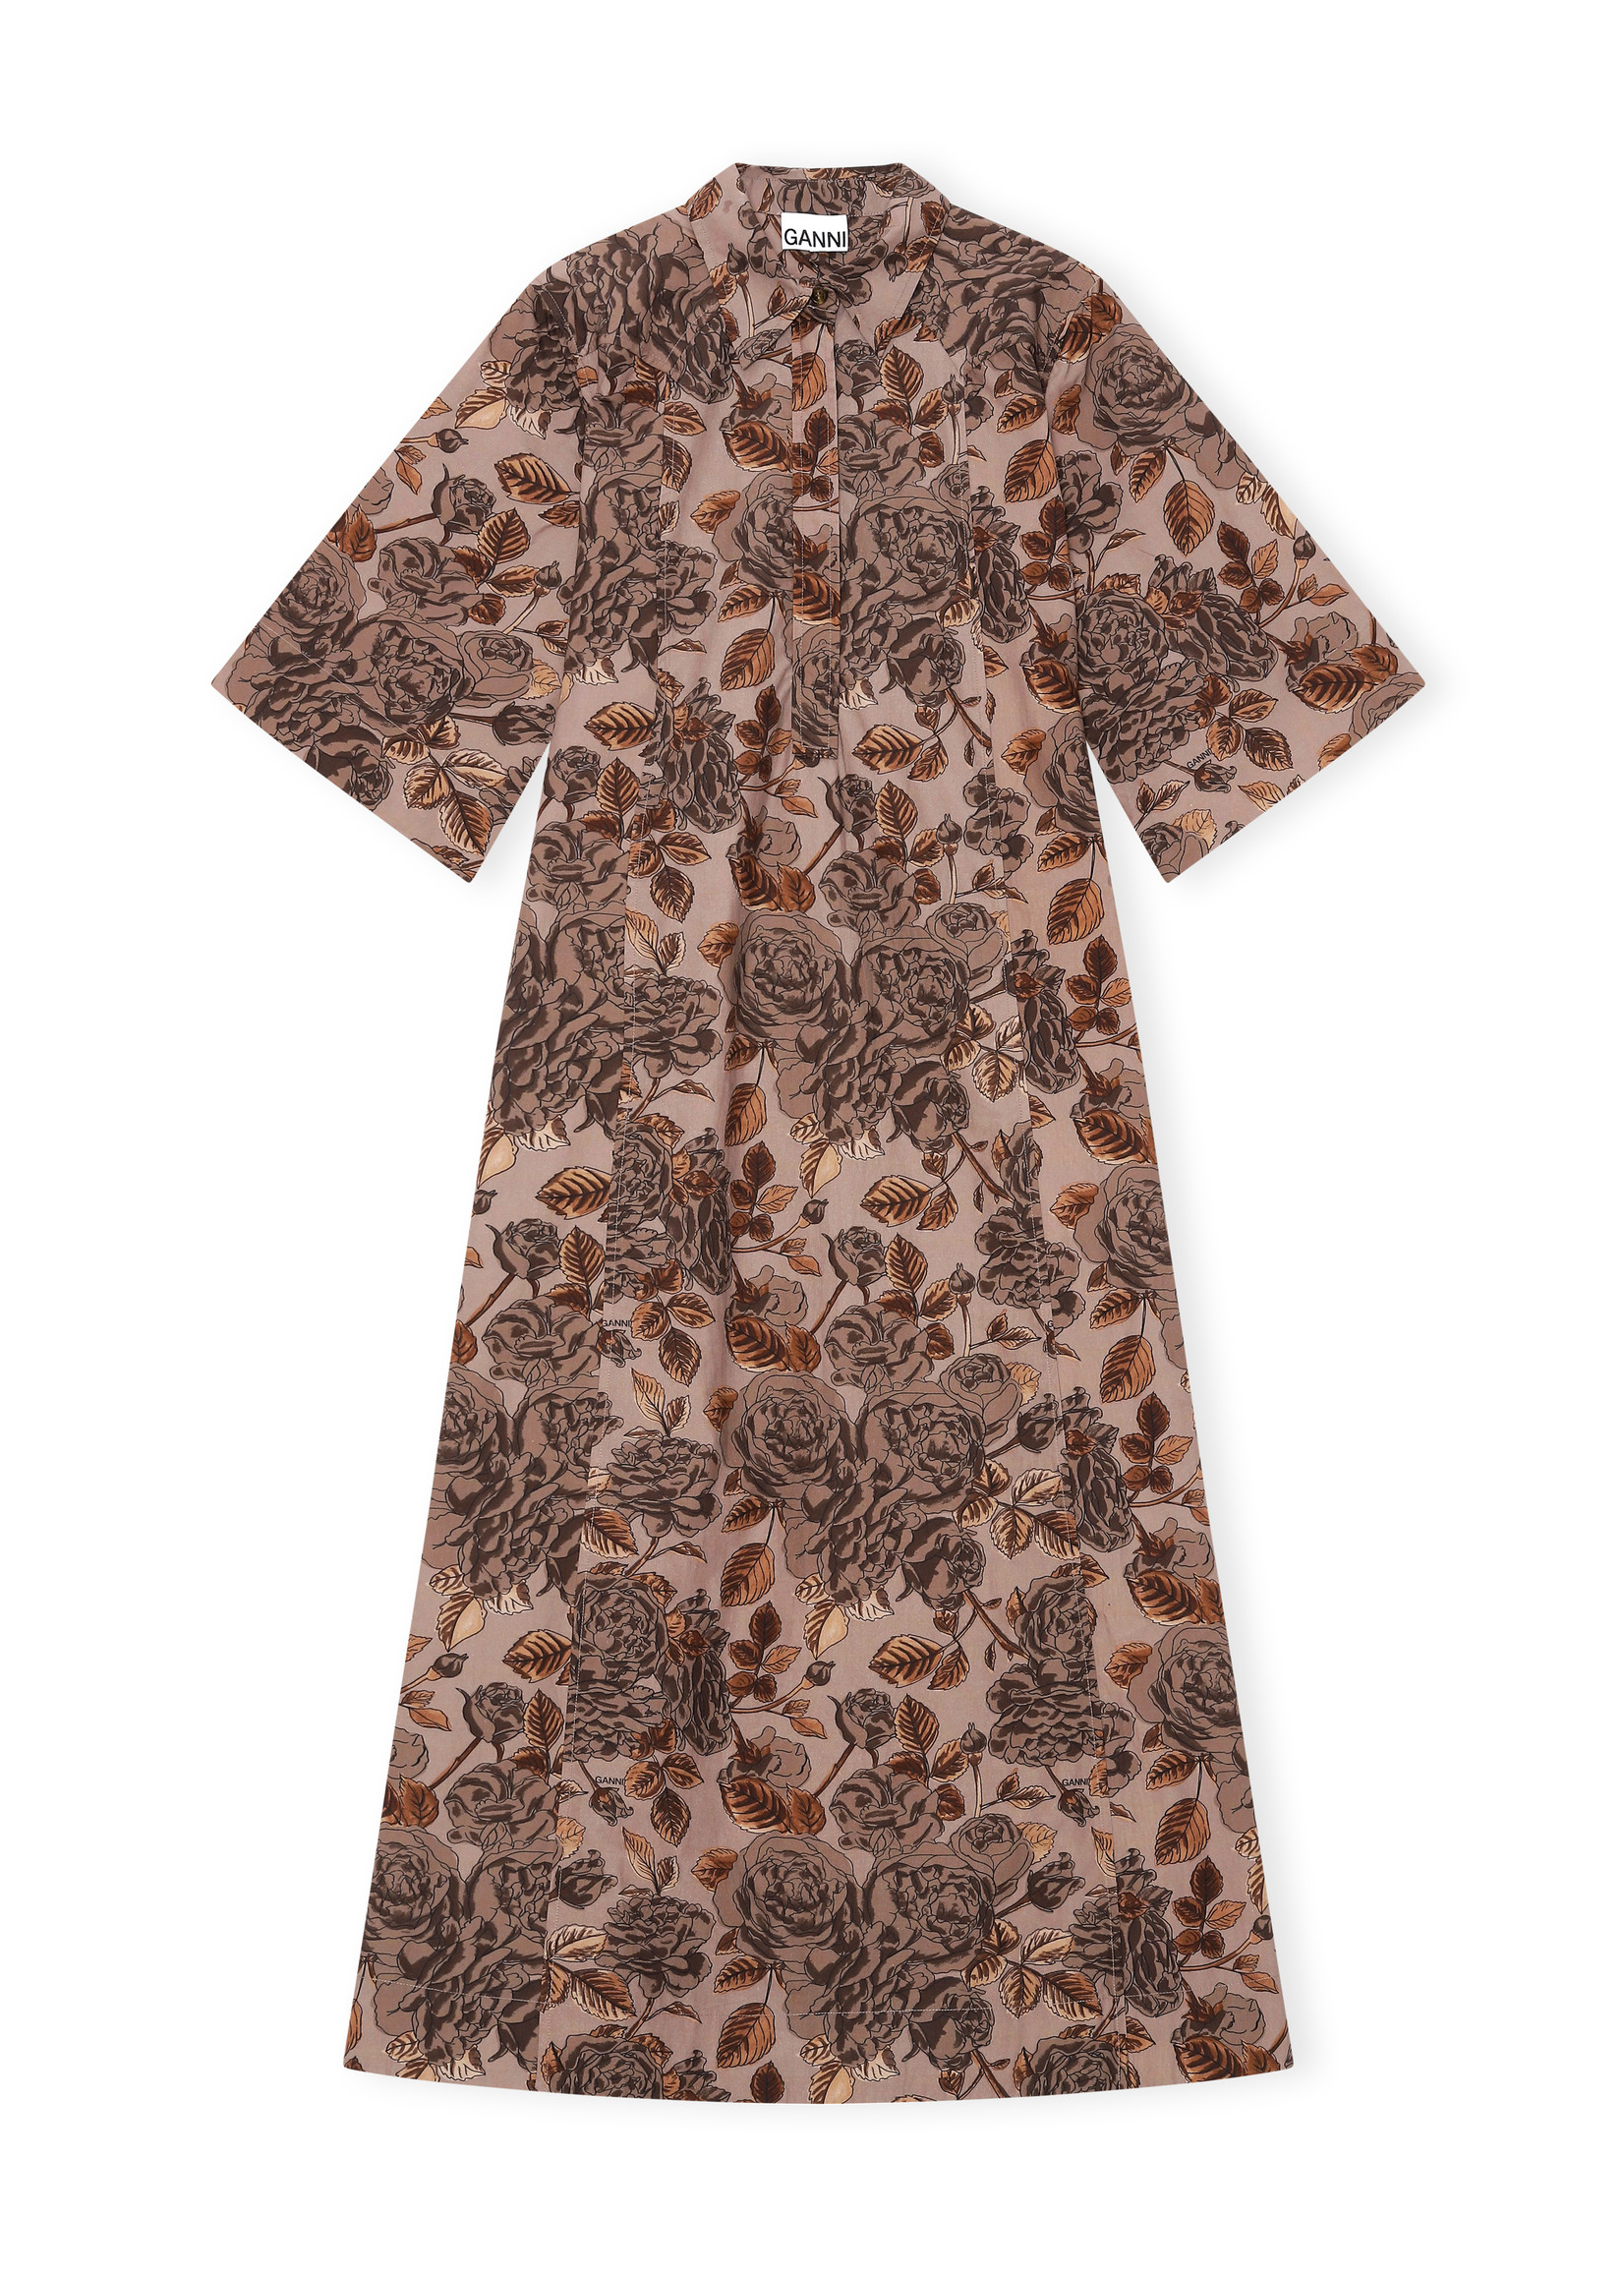 GANNI Poplin Maxi Dress in Fossil Floral Print